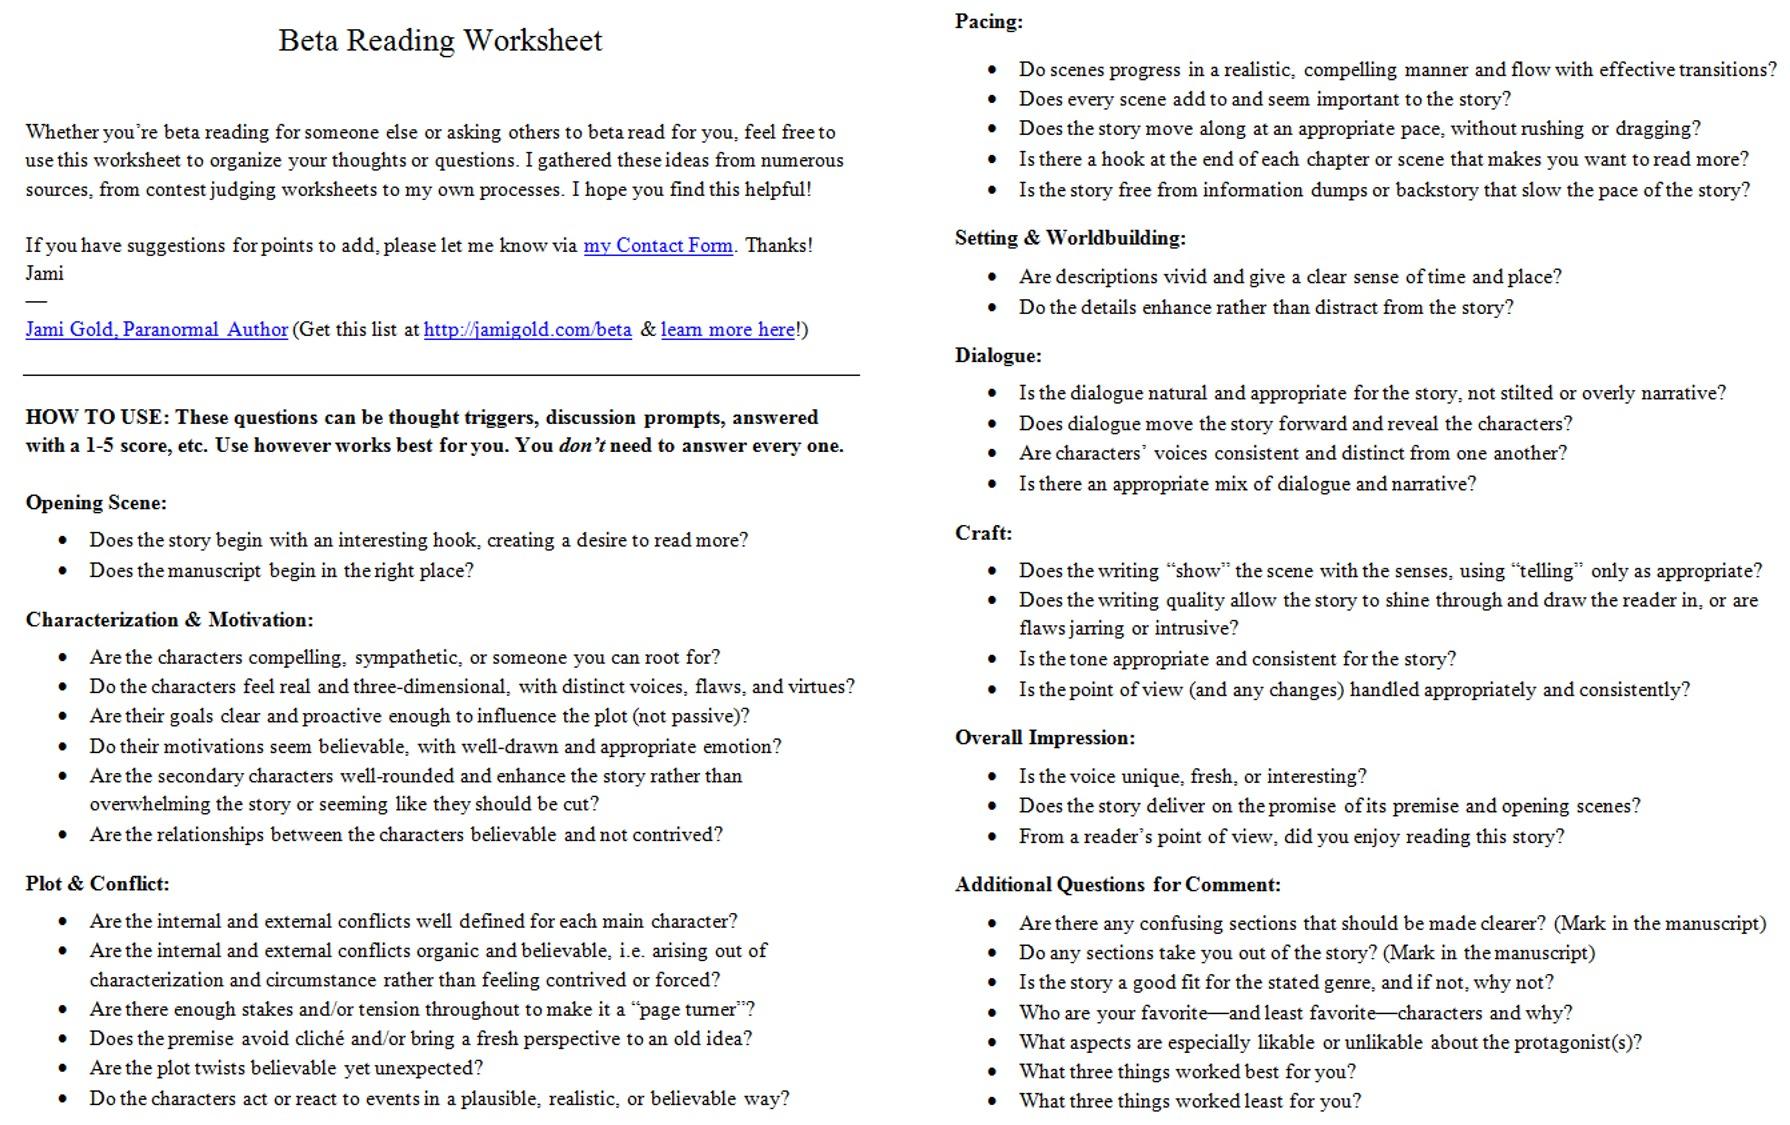 Weirdmailus  Remarkable Worksheets For Writers  Jami Gold Paranormal Author With Goodlooking Screen Shot Of The Twopage Beta Reading Worksheet With Breathtaking Fractions Grade  Worksheets Also Long A Silent E Worksheet In Addition Maths Negative Numbers Worksheet And Worksheet On Triangles As Well As Sorting Polygons Worksheet Additionally Past Tense Grammar Worksheets From Jamigoldcom With Weirdmailus  Goodlooking Worksheets For Writers  Jami Gold Paranormal Author With Breathtaking Screen Shot Of The Twopage Beta Reading Worksheet And Remarkable Fractions Grade  Worksheets Also Long A Silent E Worksheet In Addition Maths Negative Numbers Worksheet From Jamigoldcom